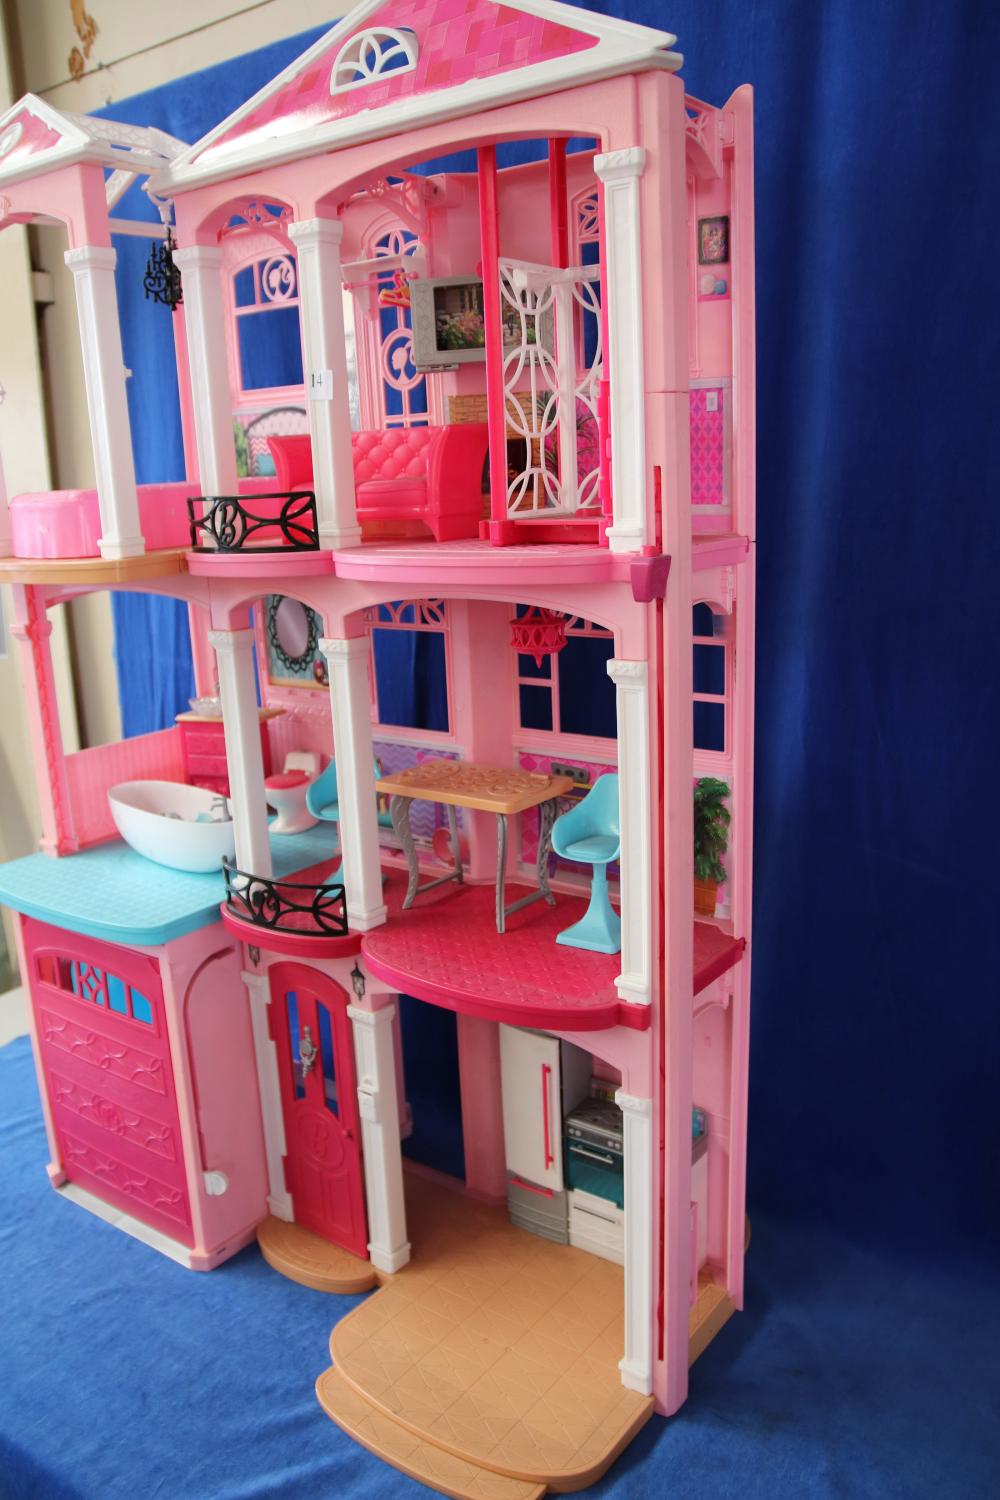 LARGE BARBIE MANSION AND ACCESSORIES